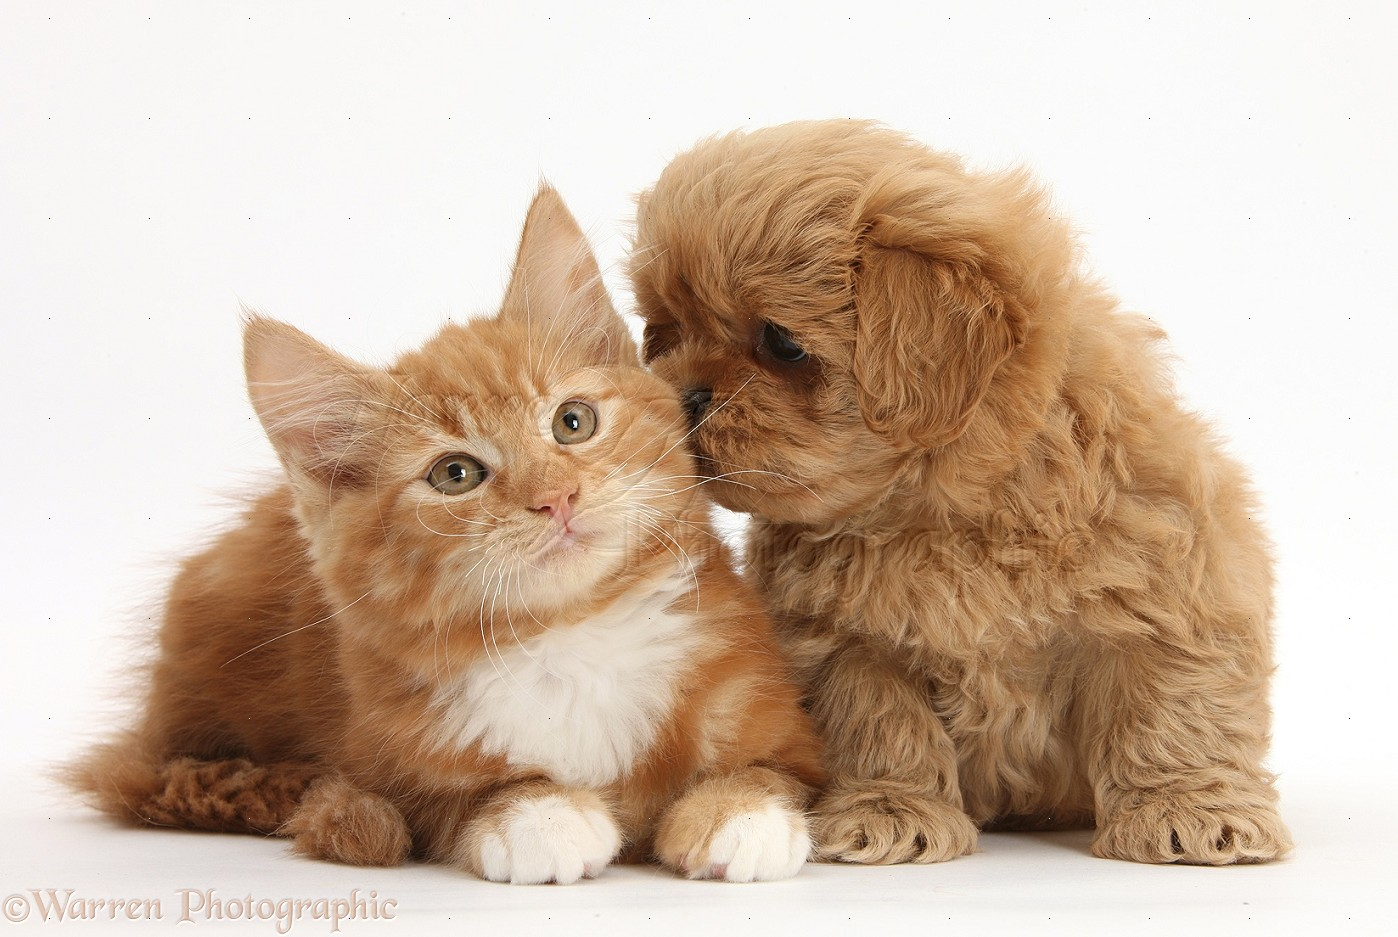 Pets Peekapoo pup and ginger kitten photo WP